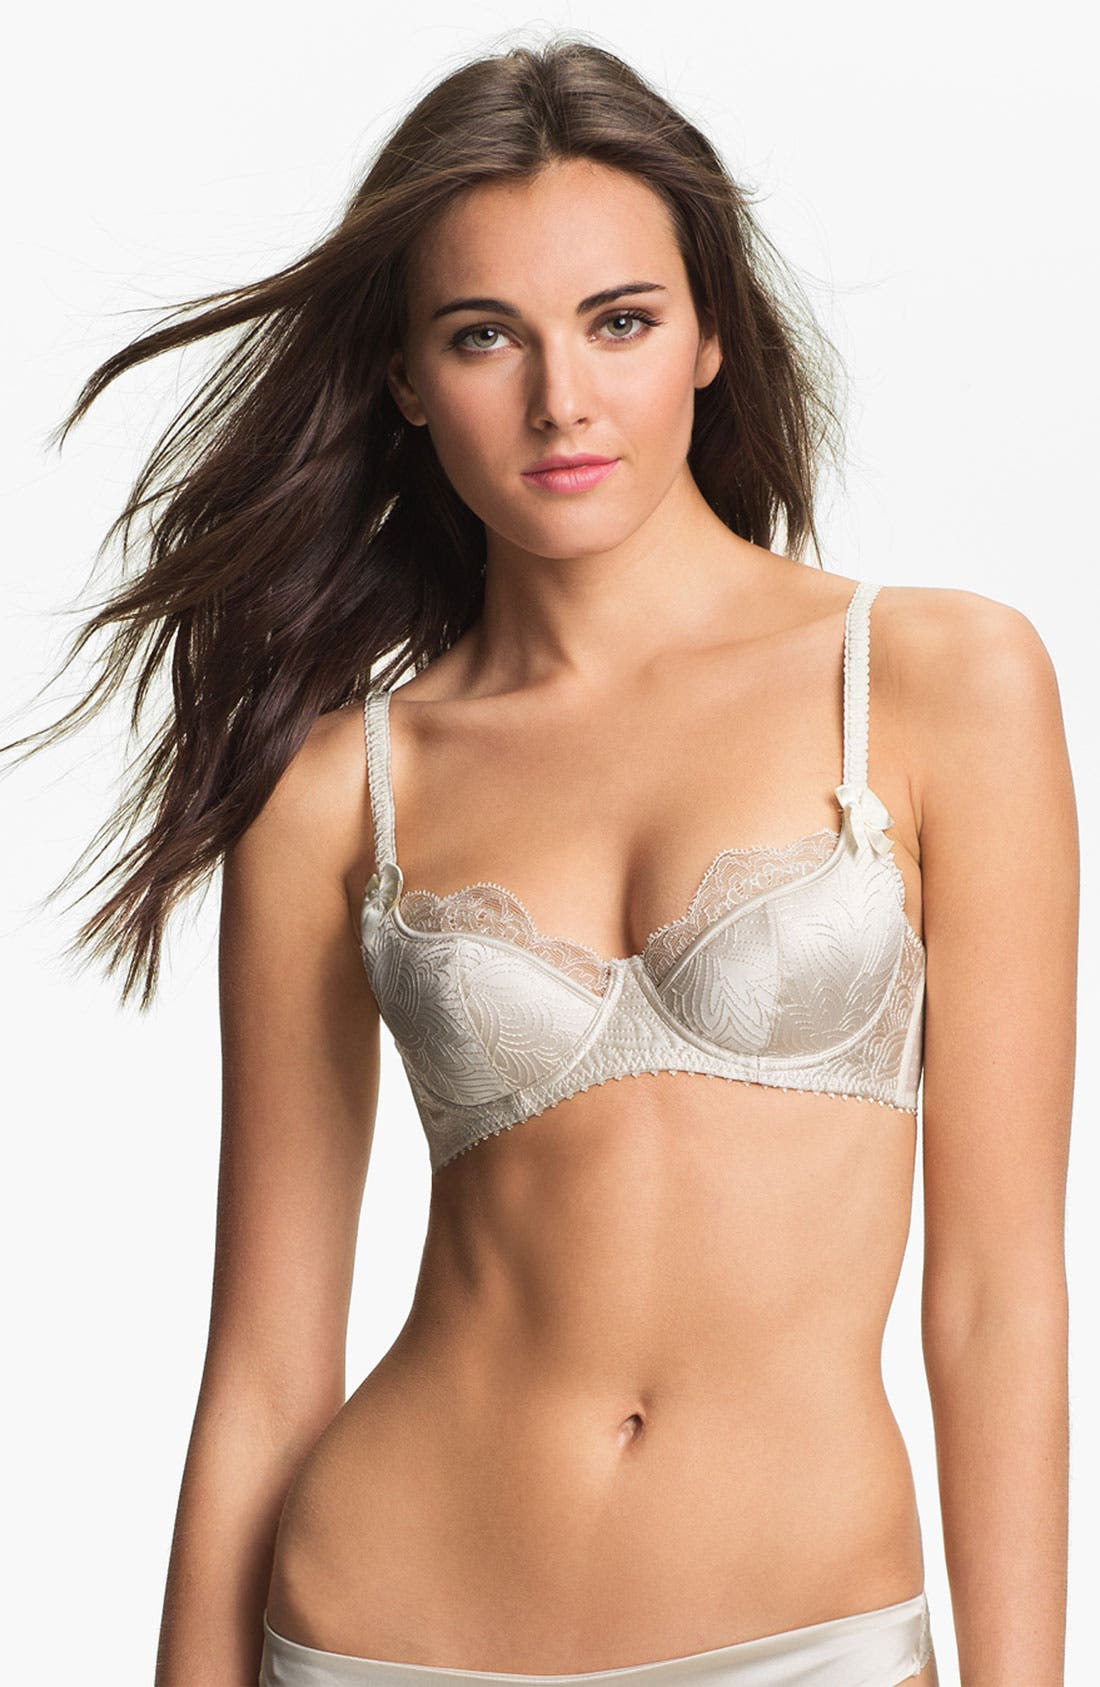 Alternate Image 1 Selected - Stella McCartney 'Erin Wishing' Underwire Balconette Bra